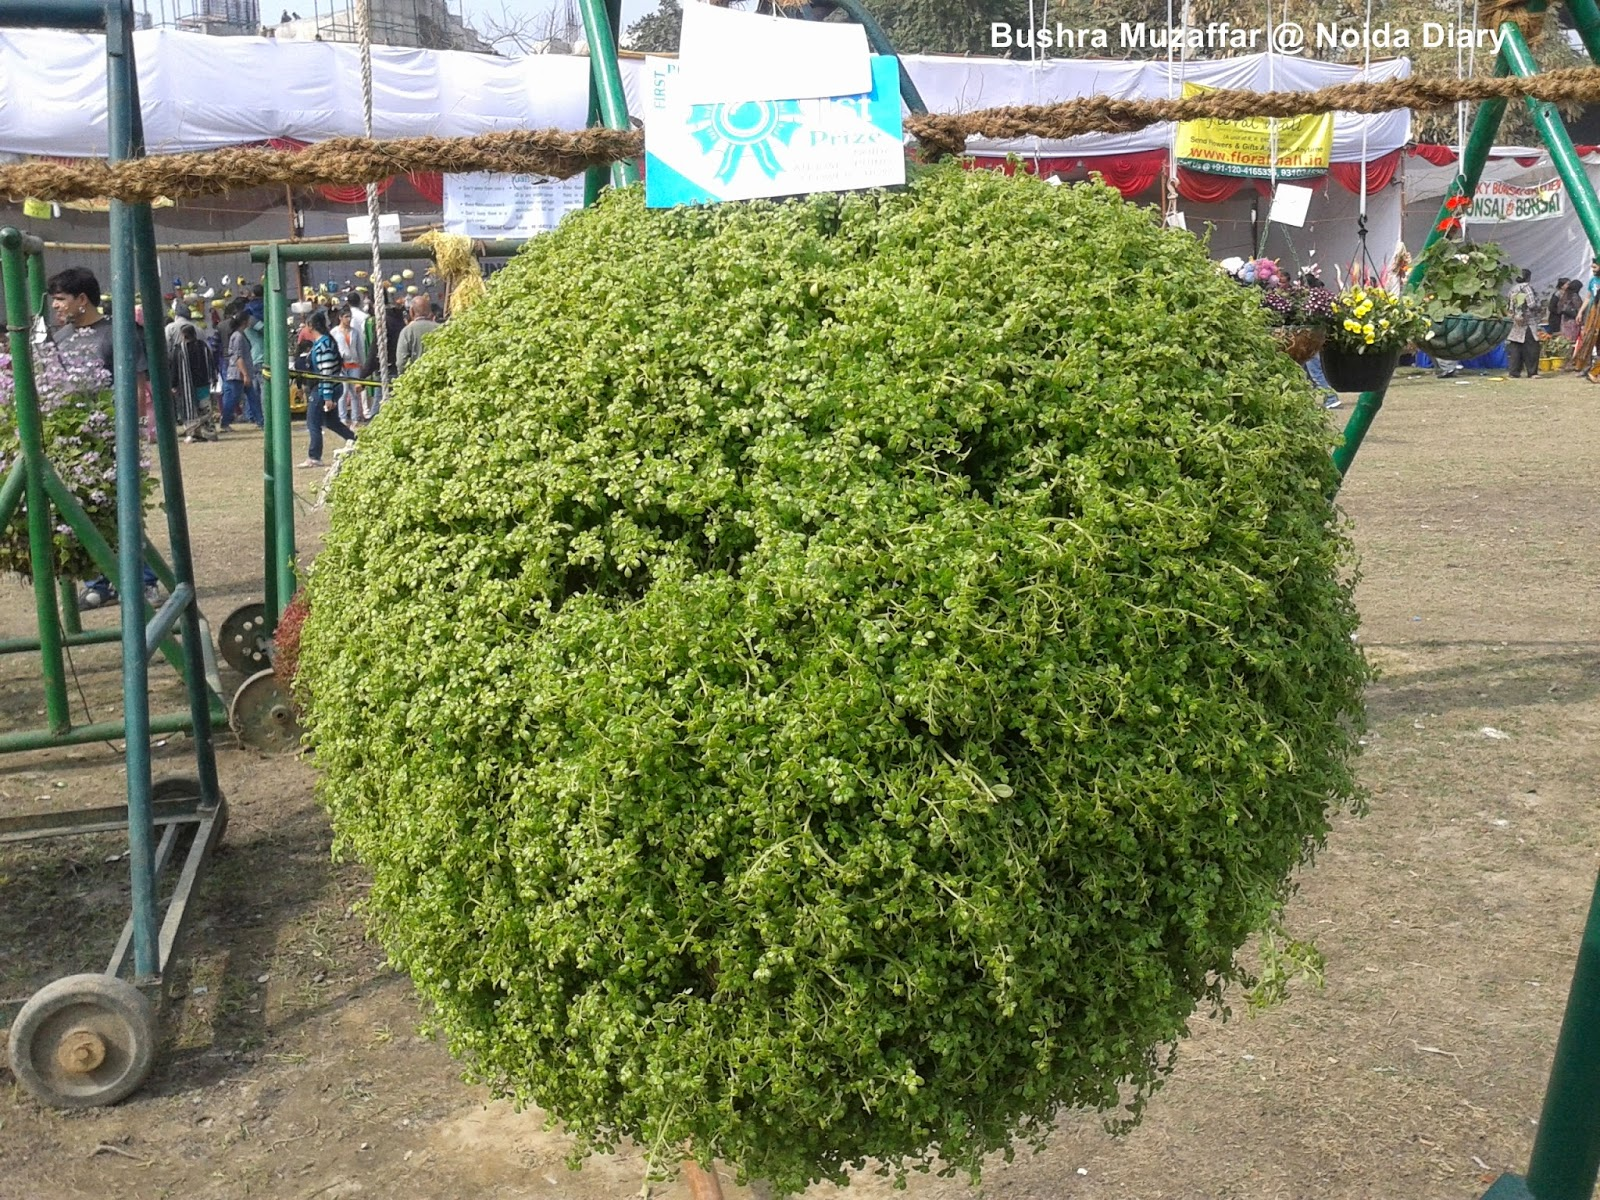 Award winning huge ball of foliage at the Noida Flower Show 2014